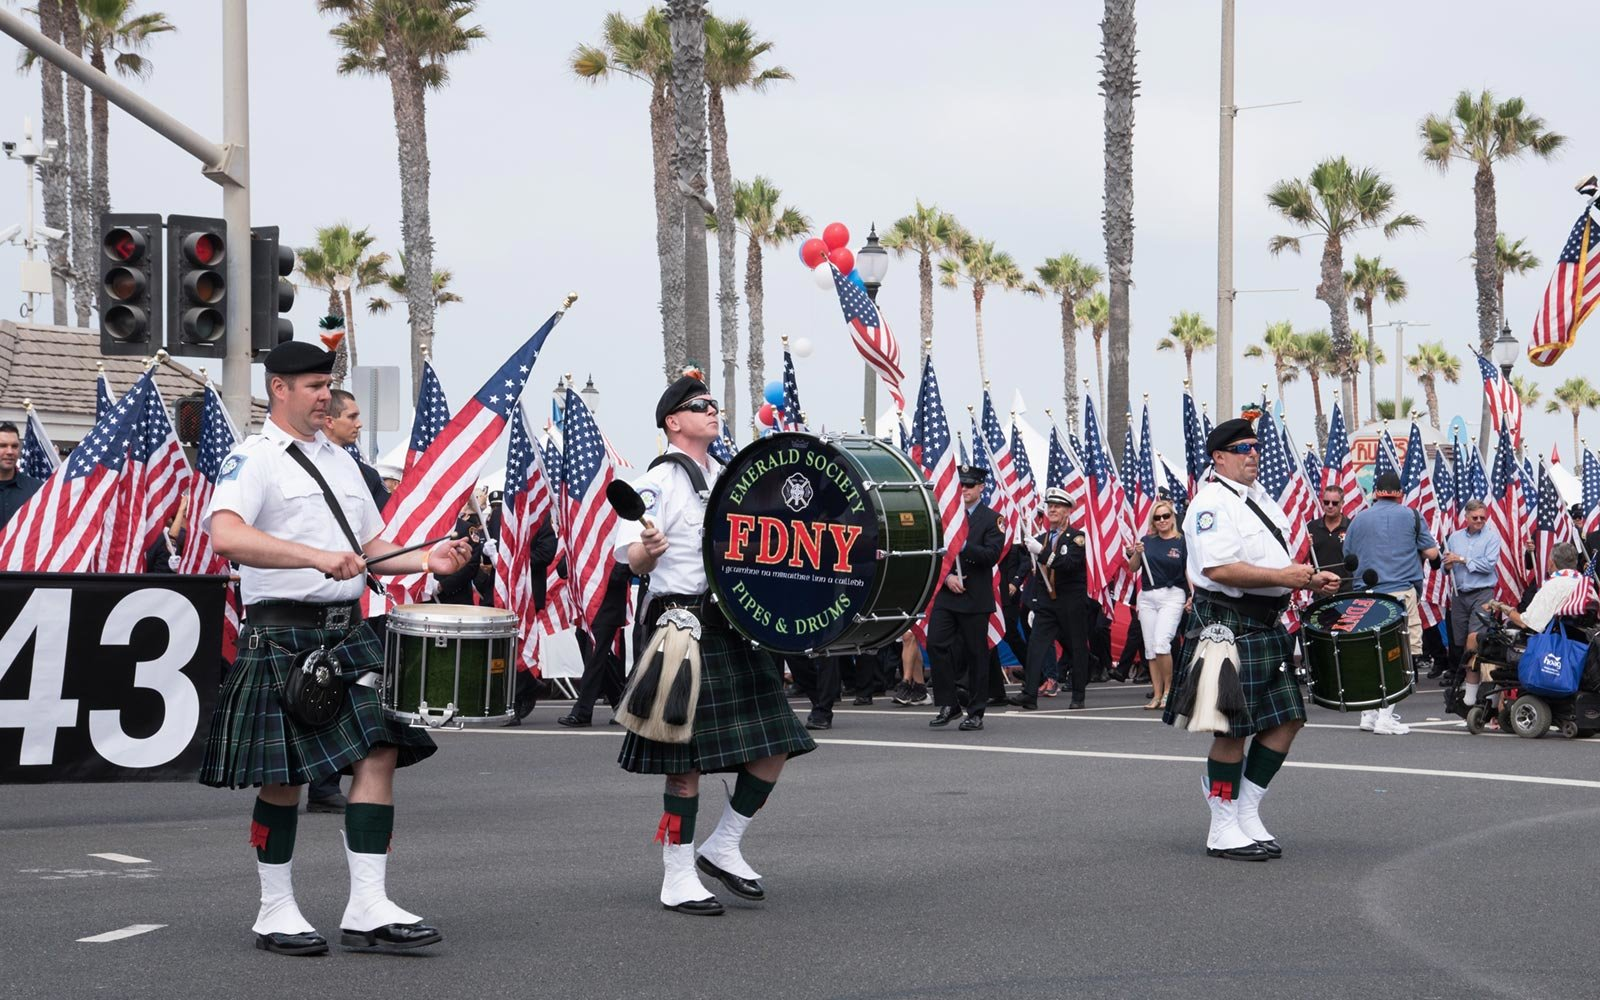 Fourth of July Parade, Huntington Beach, California